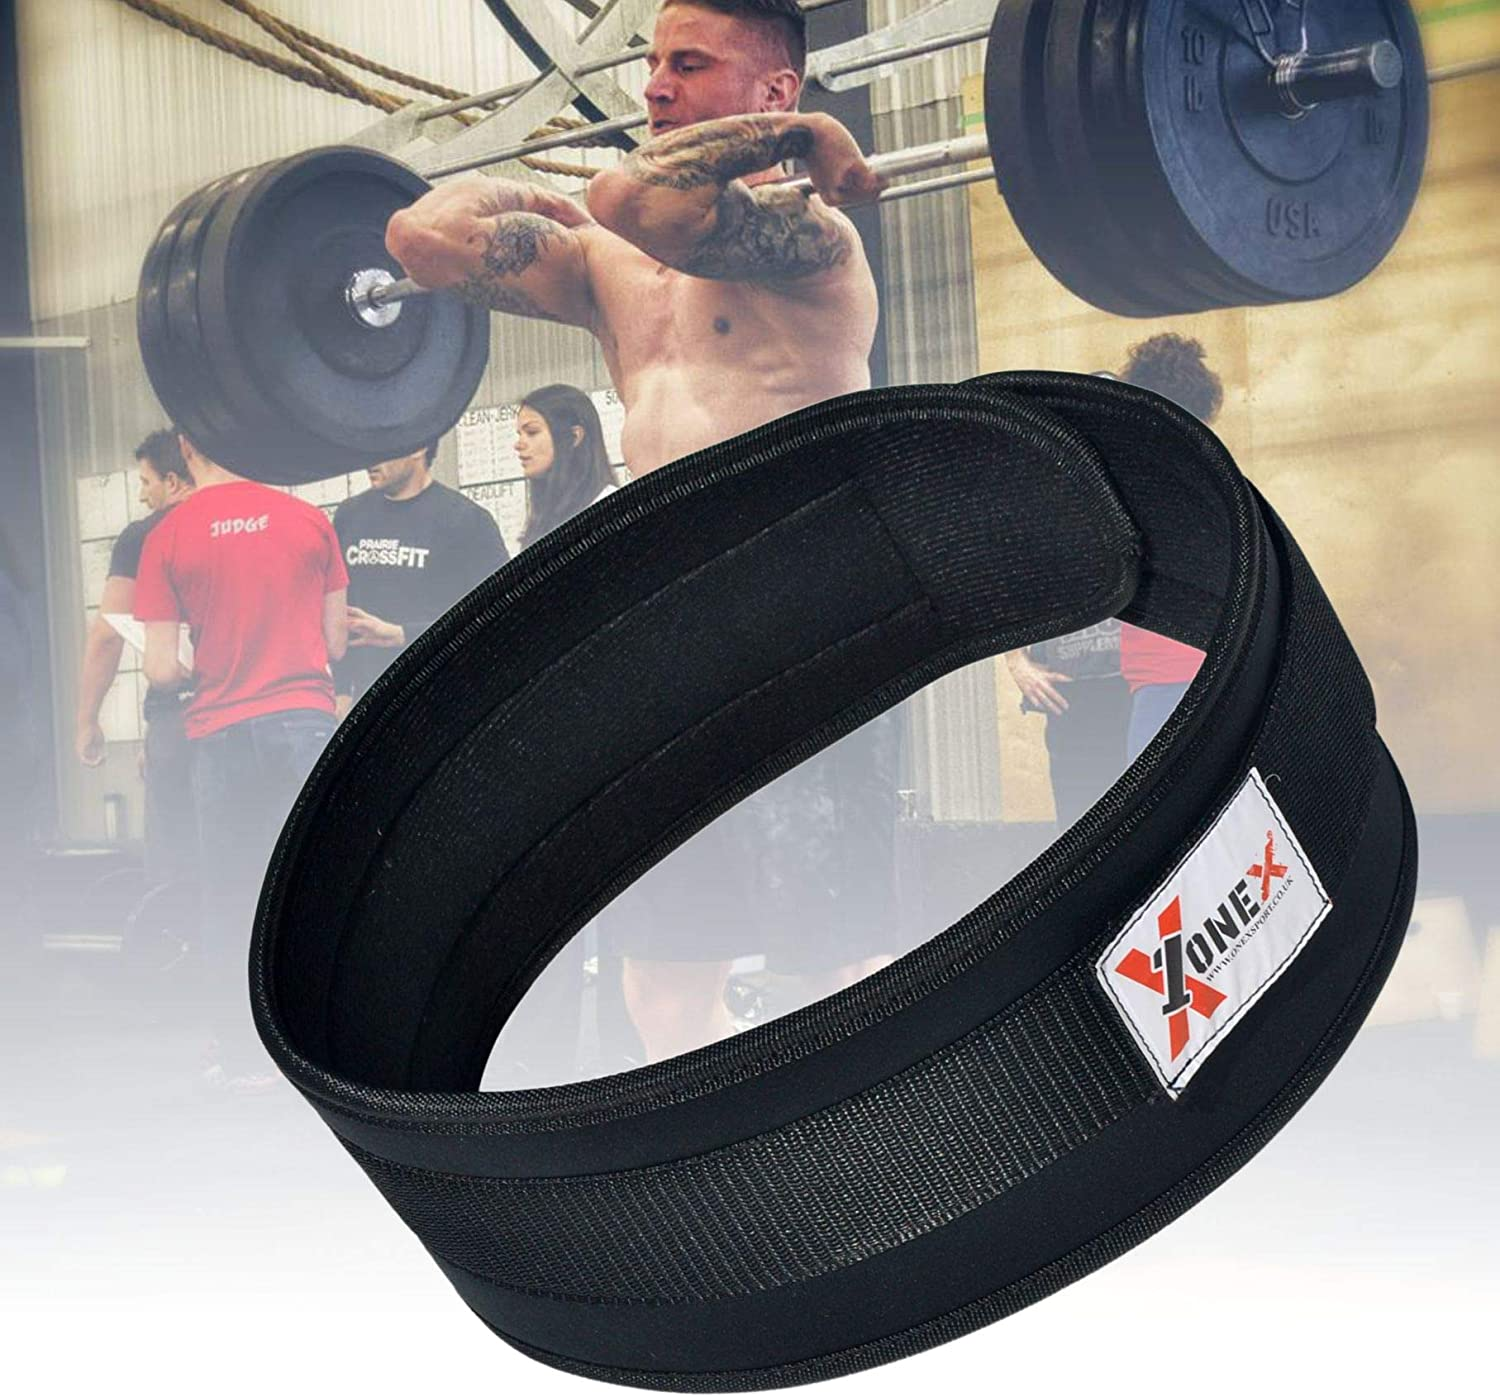 Deadlifts Squats Strength Training Power Lifting Double Neoprene Weightlifting Belt Back Back Core Support Body Building